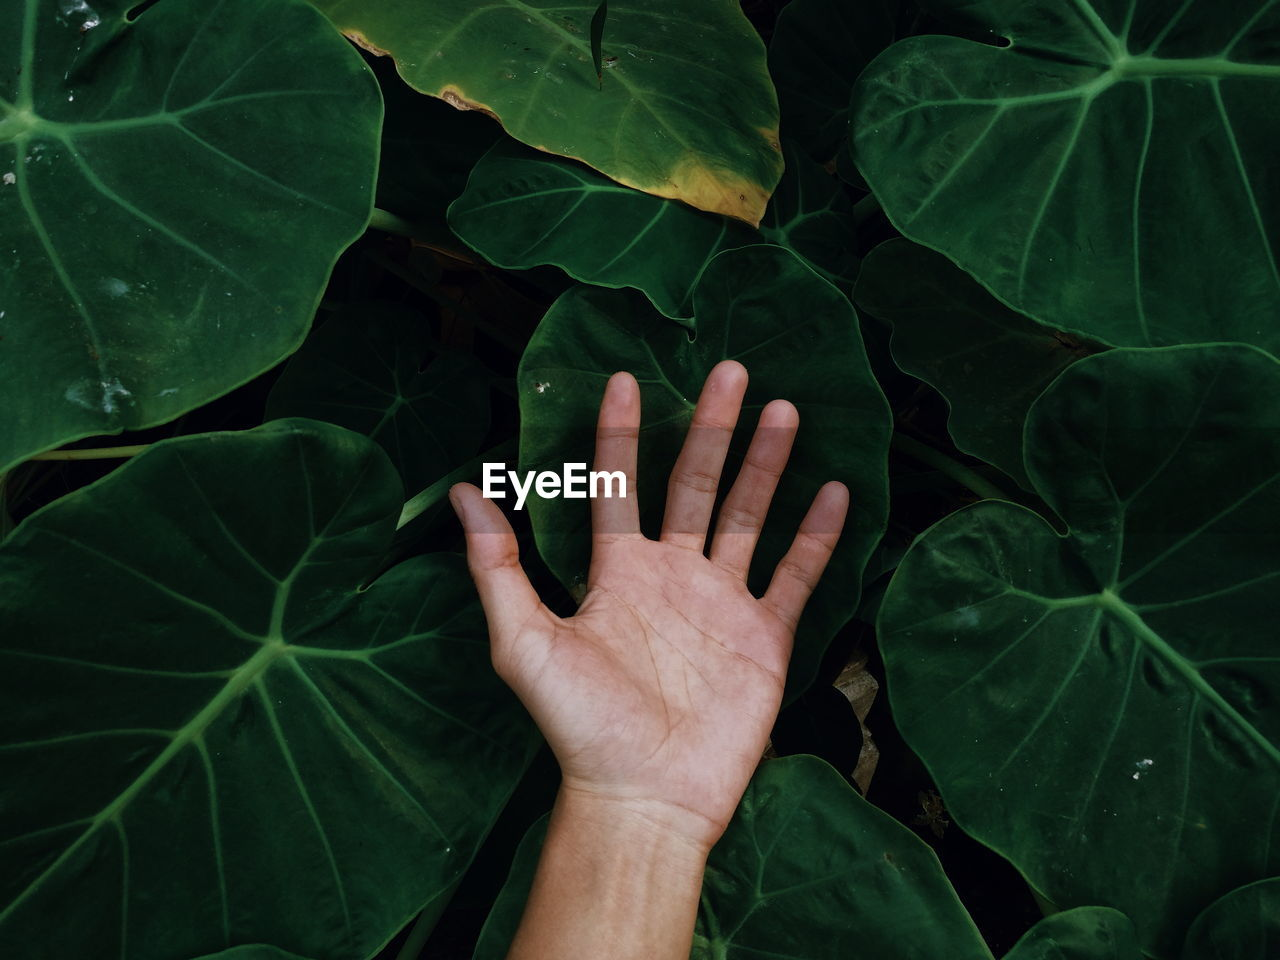 Cropped Hand Of Person Amidst Green Leaves